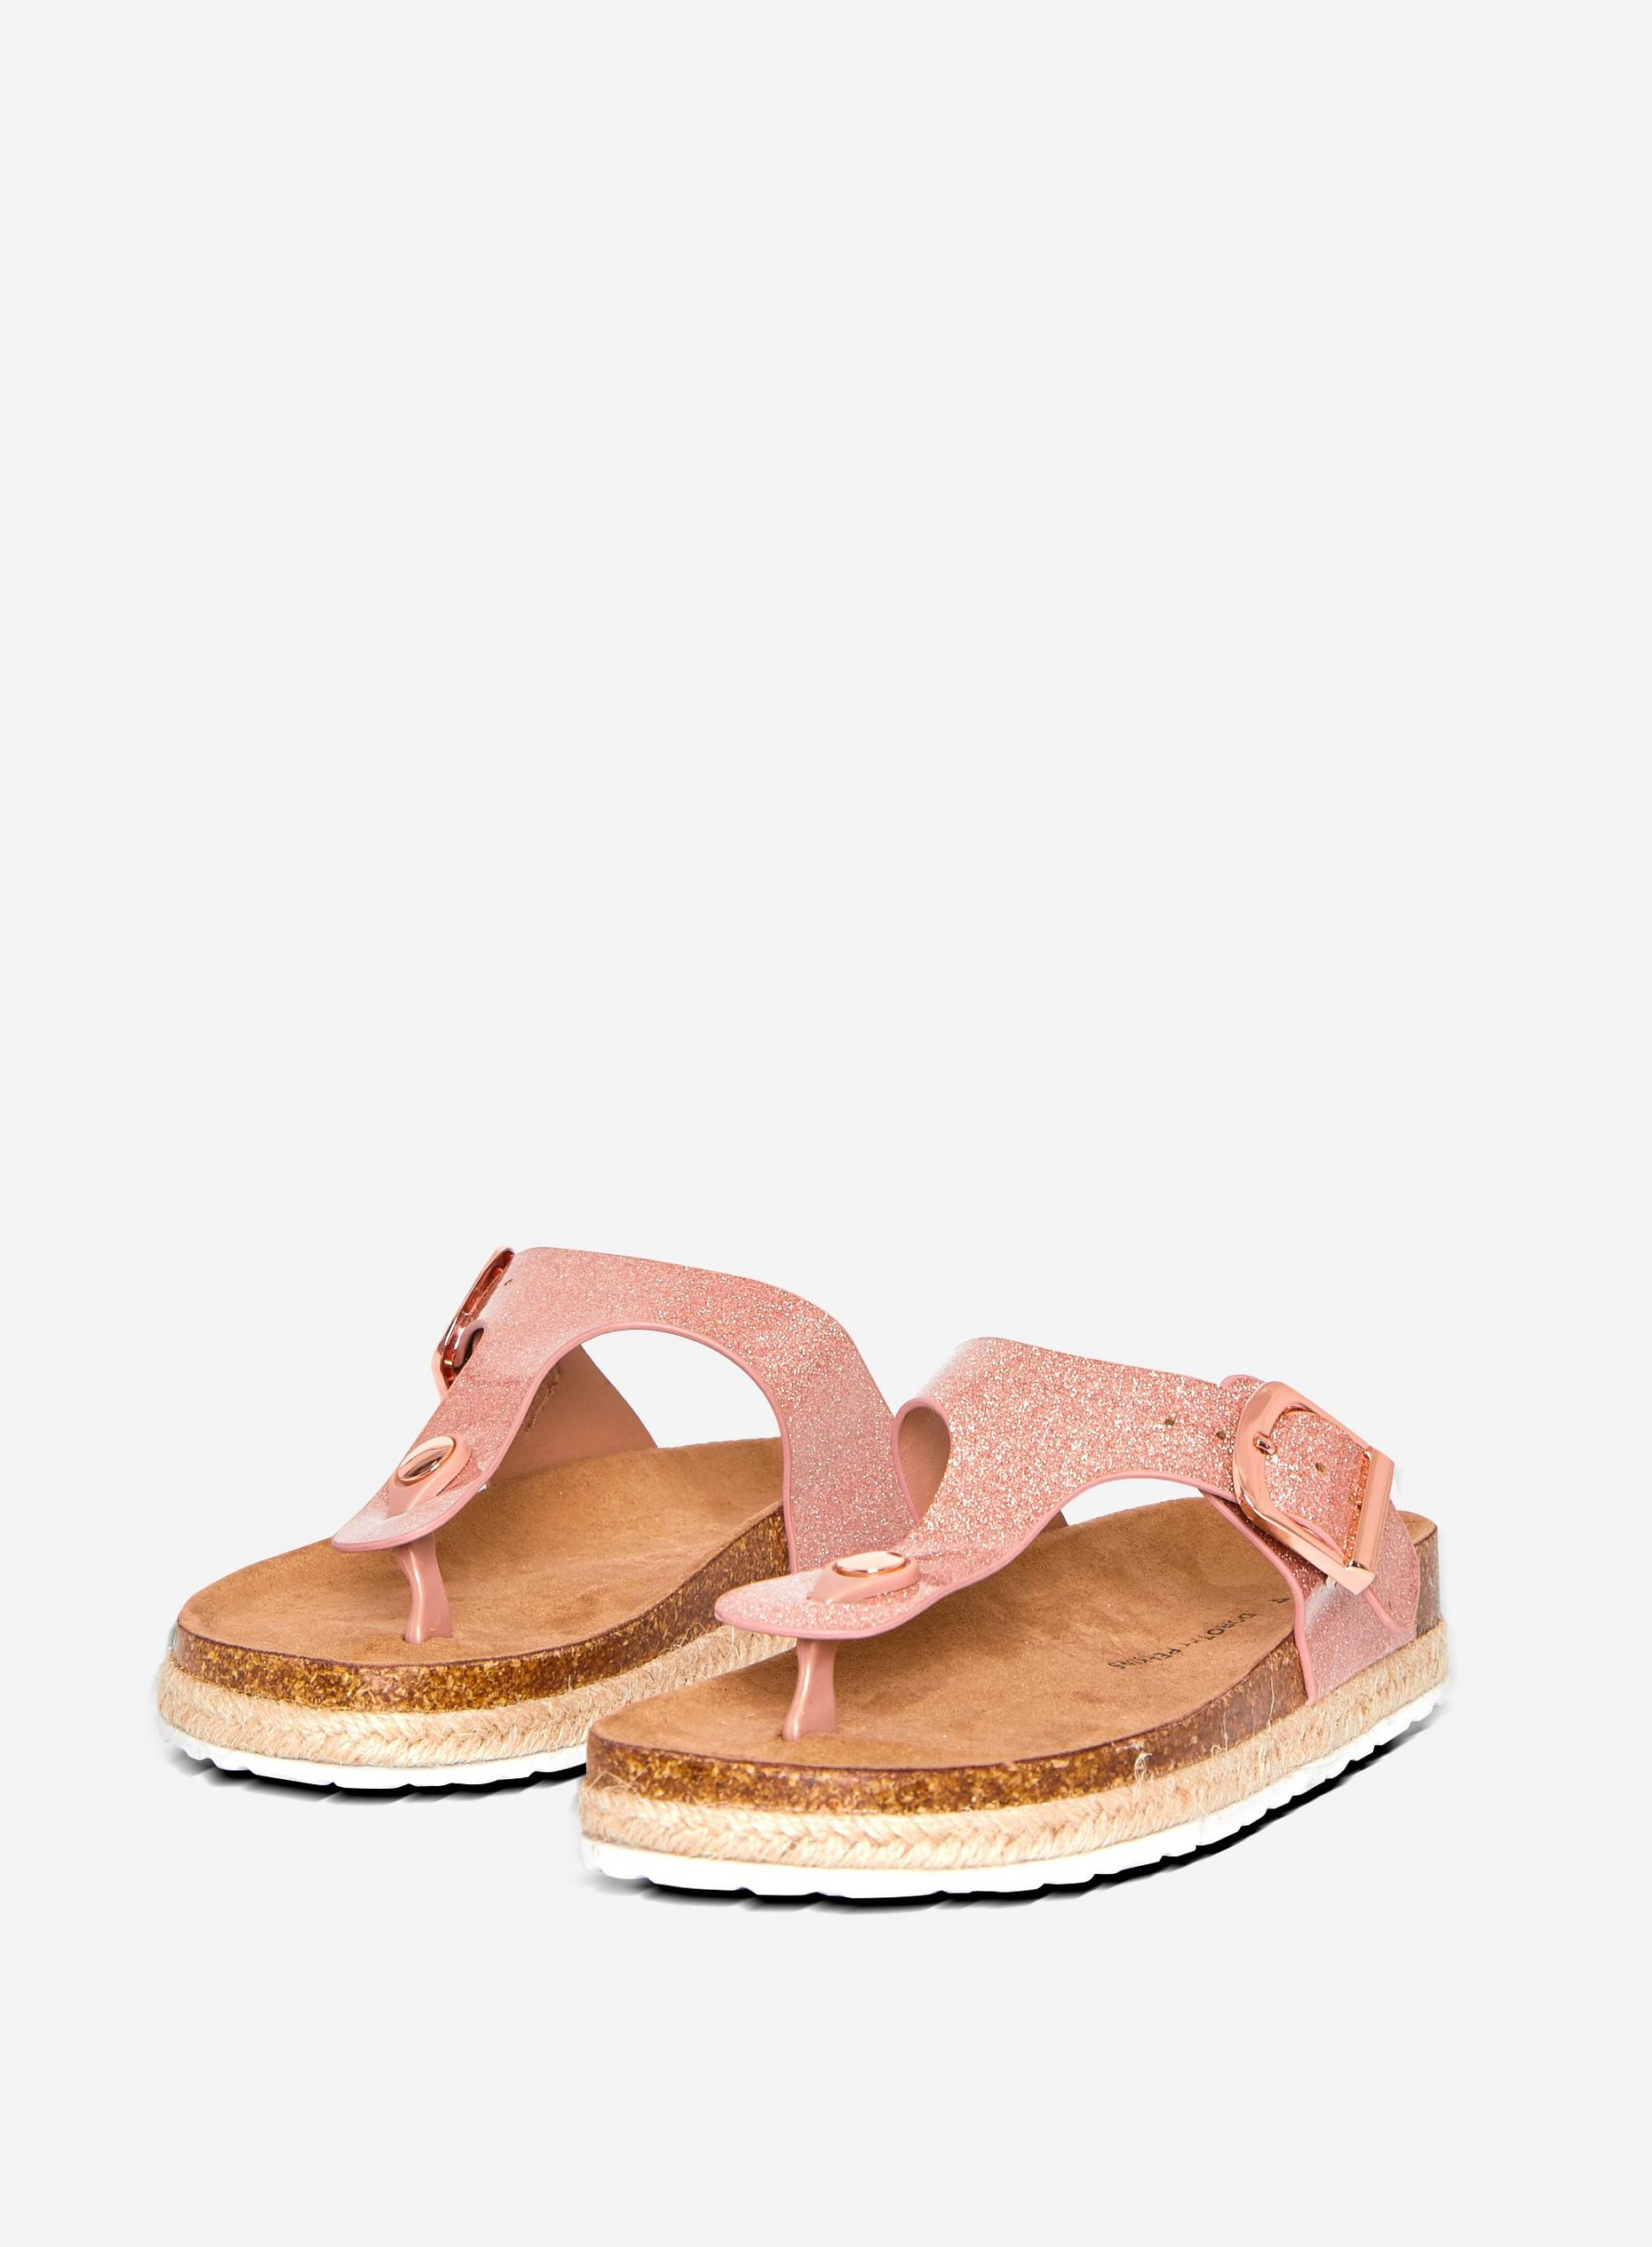 Rosegold Fleetwood Sandals